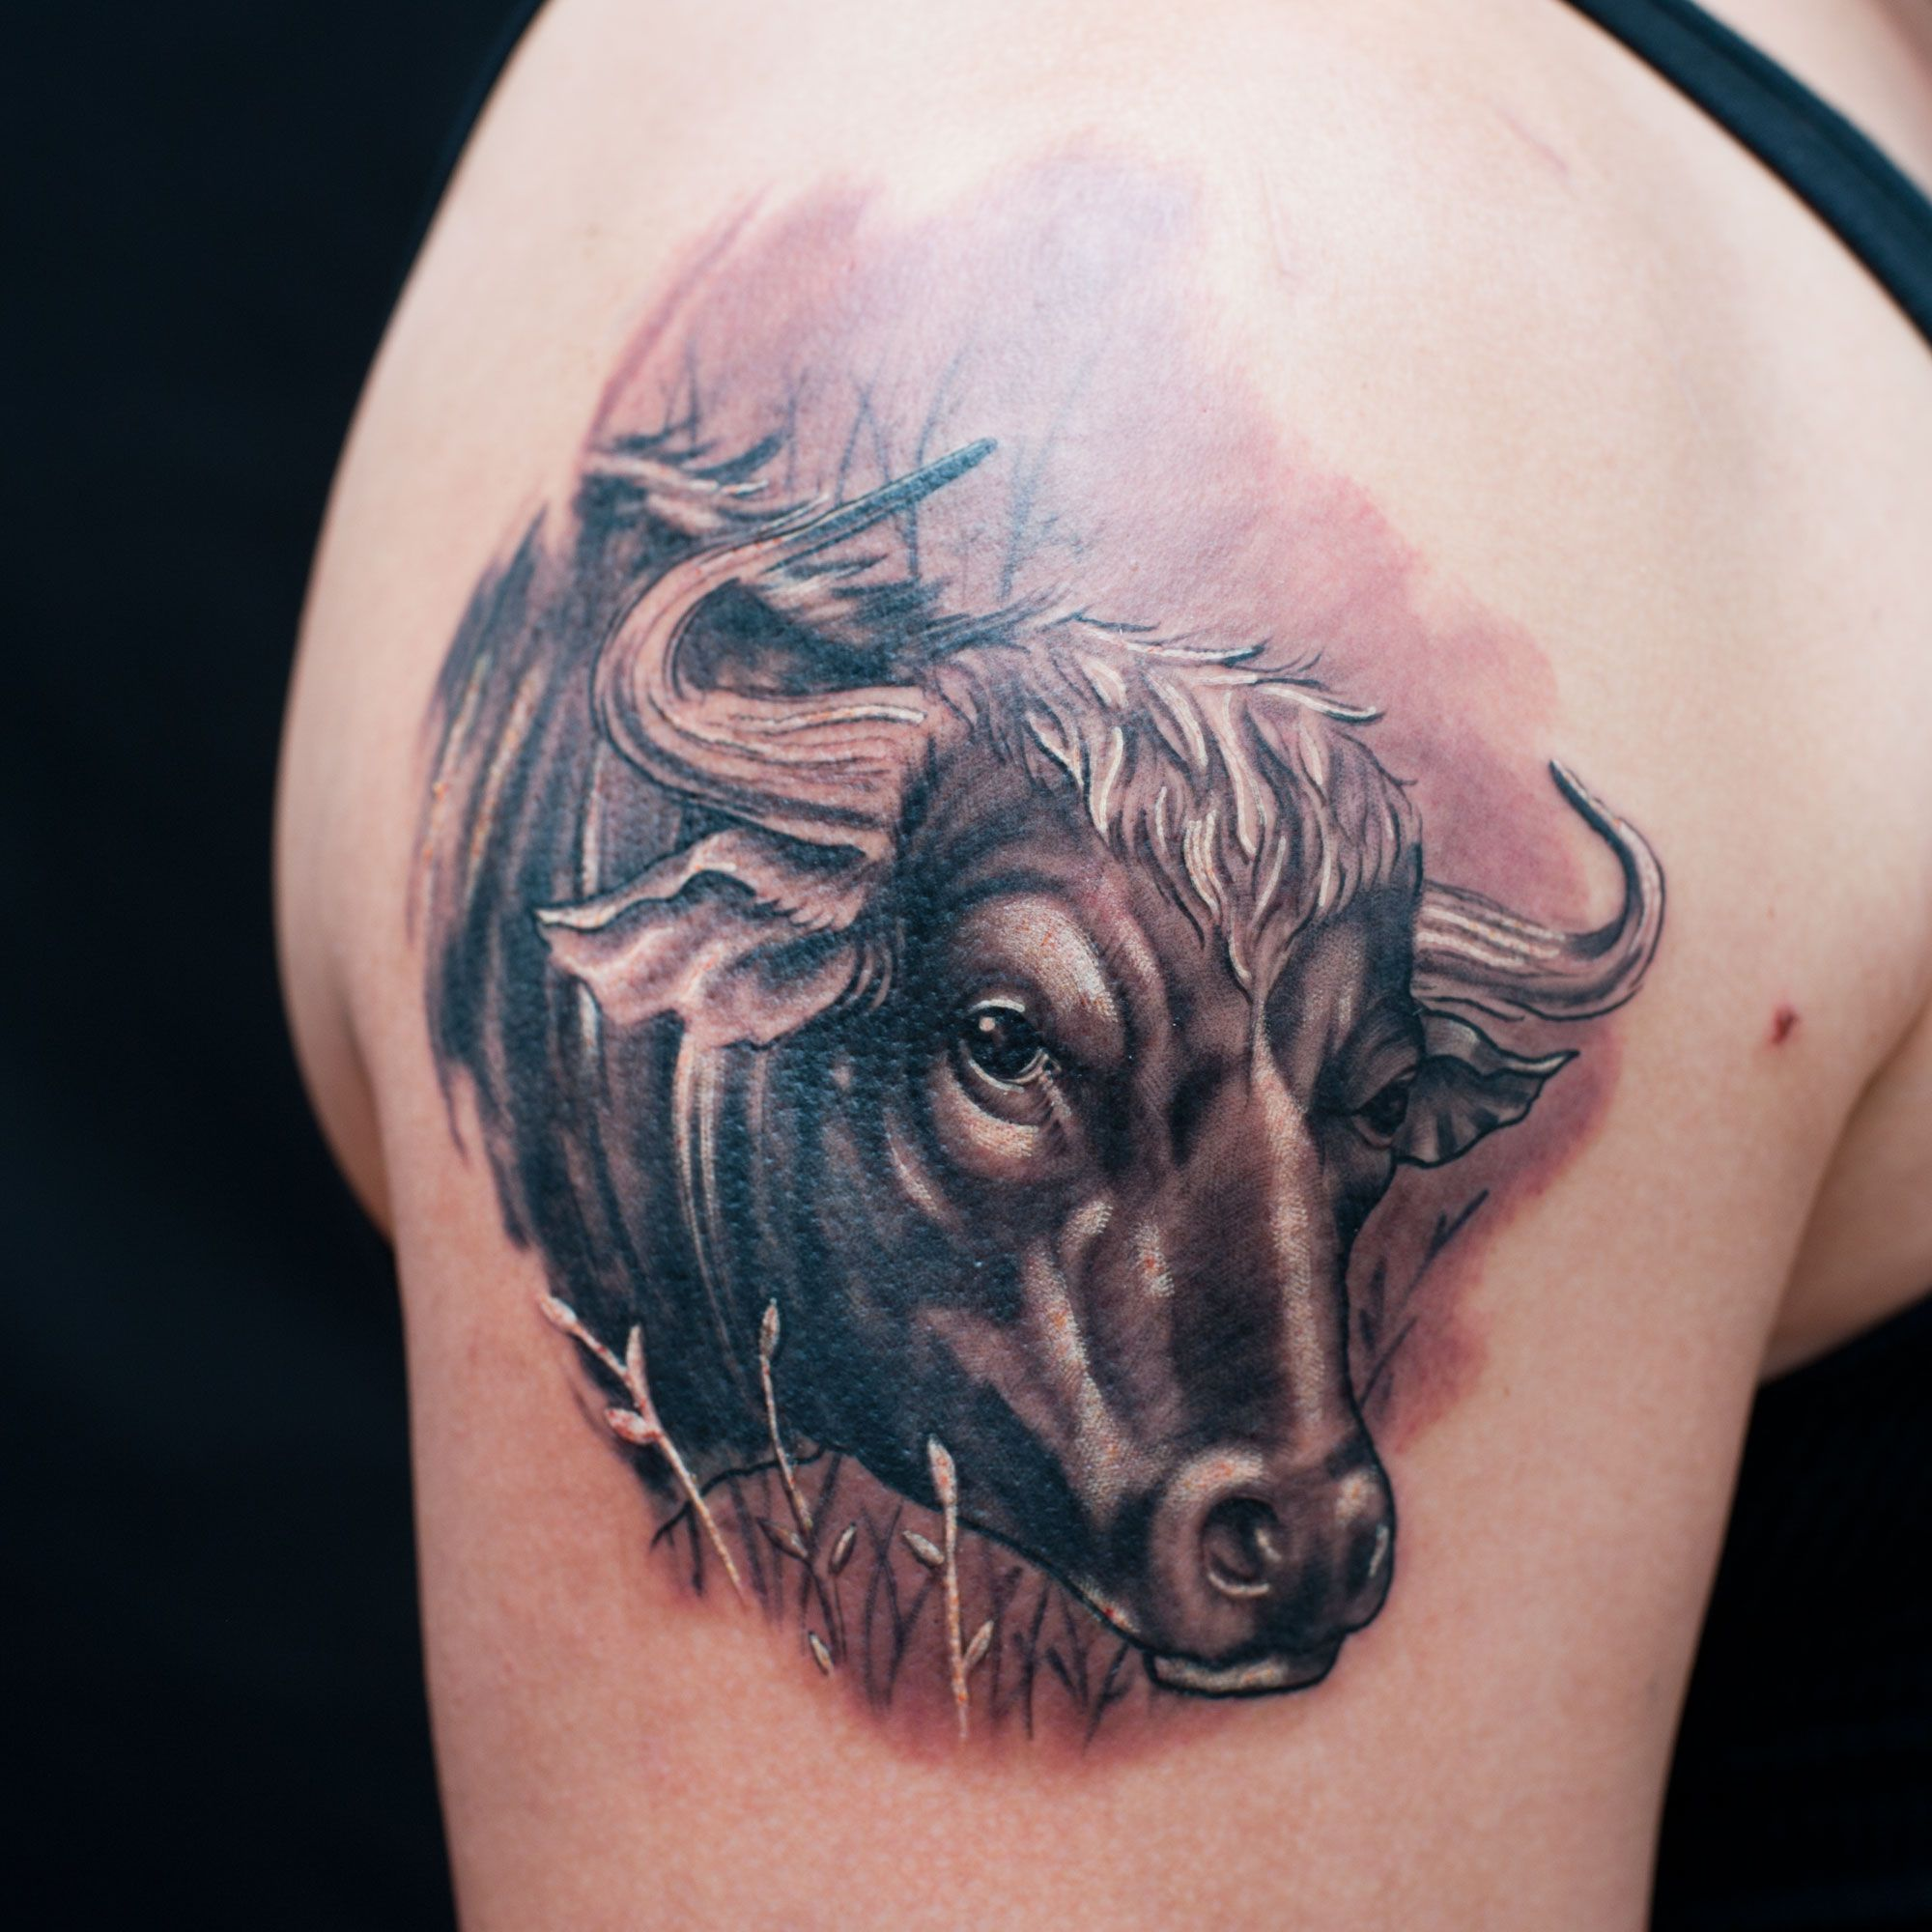 Check out this high res photo of Lalo Yunda's tattoo from